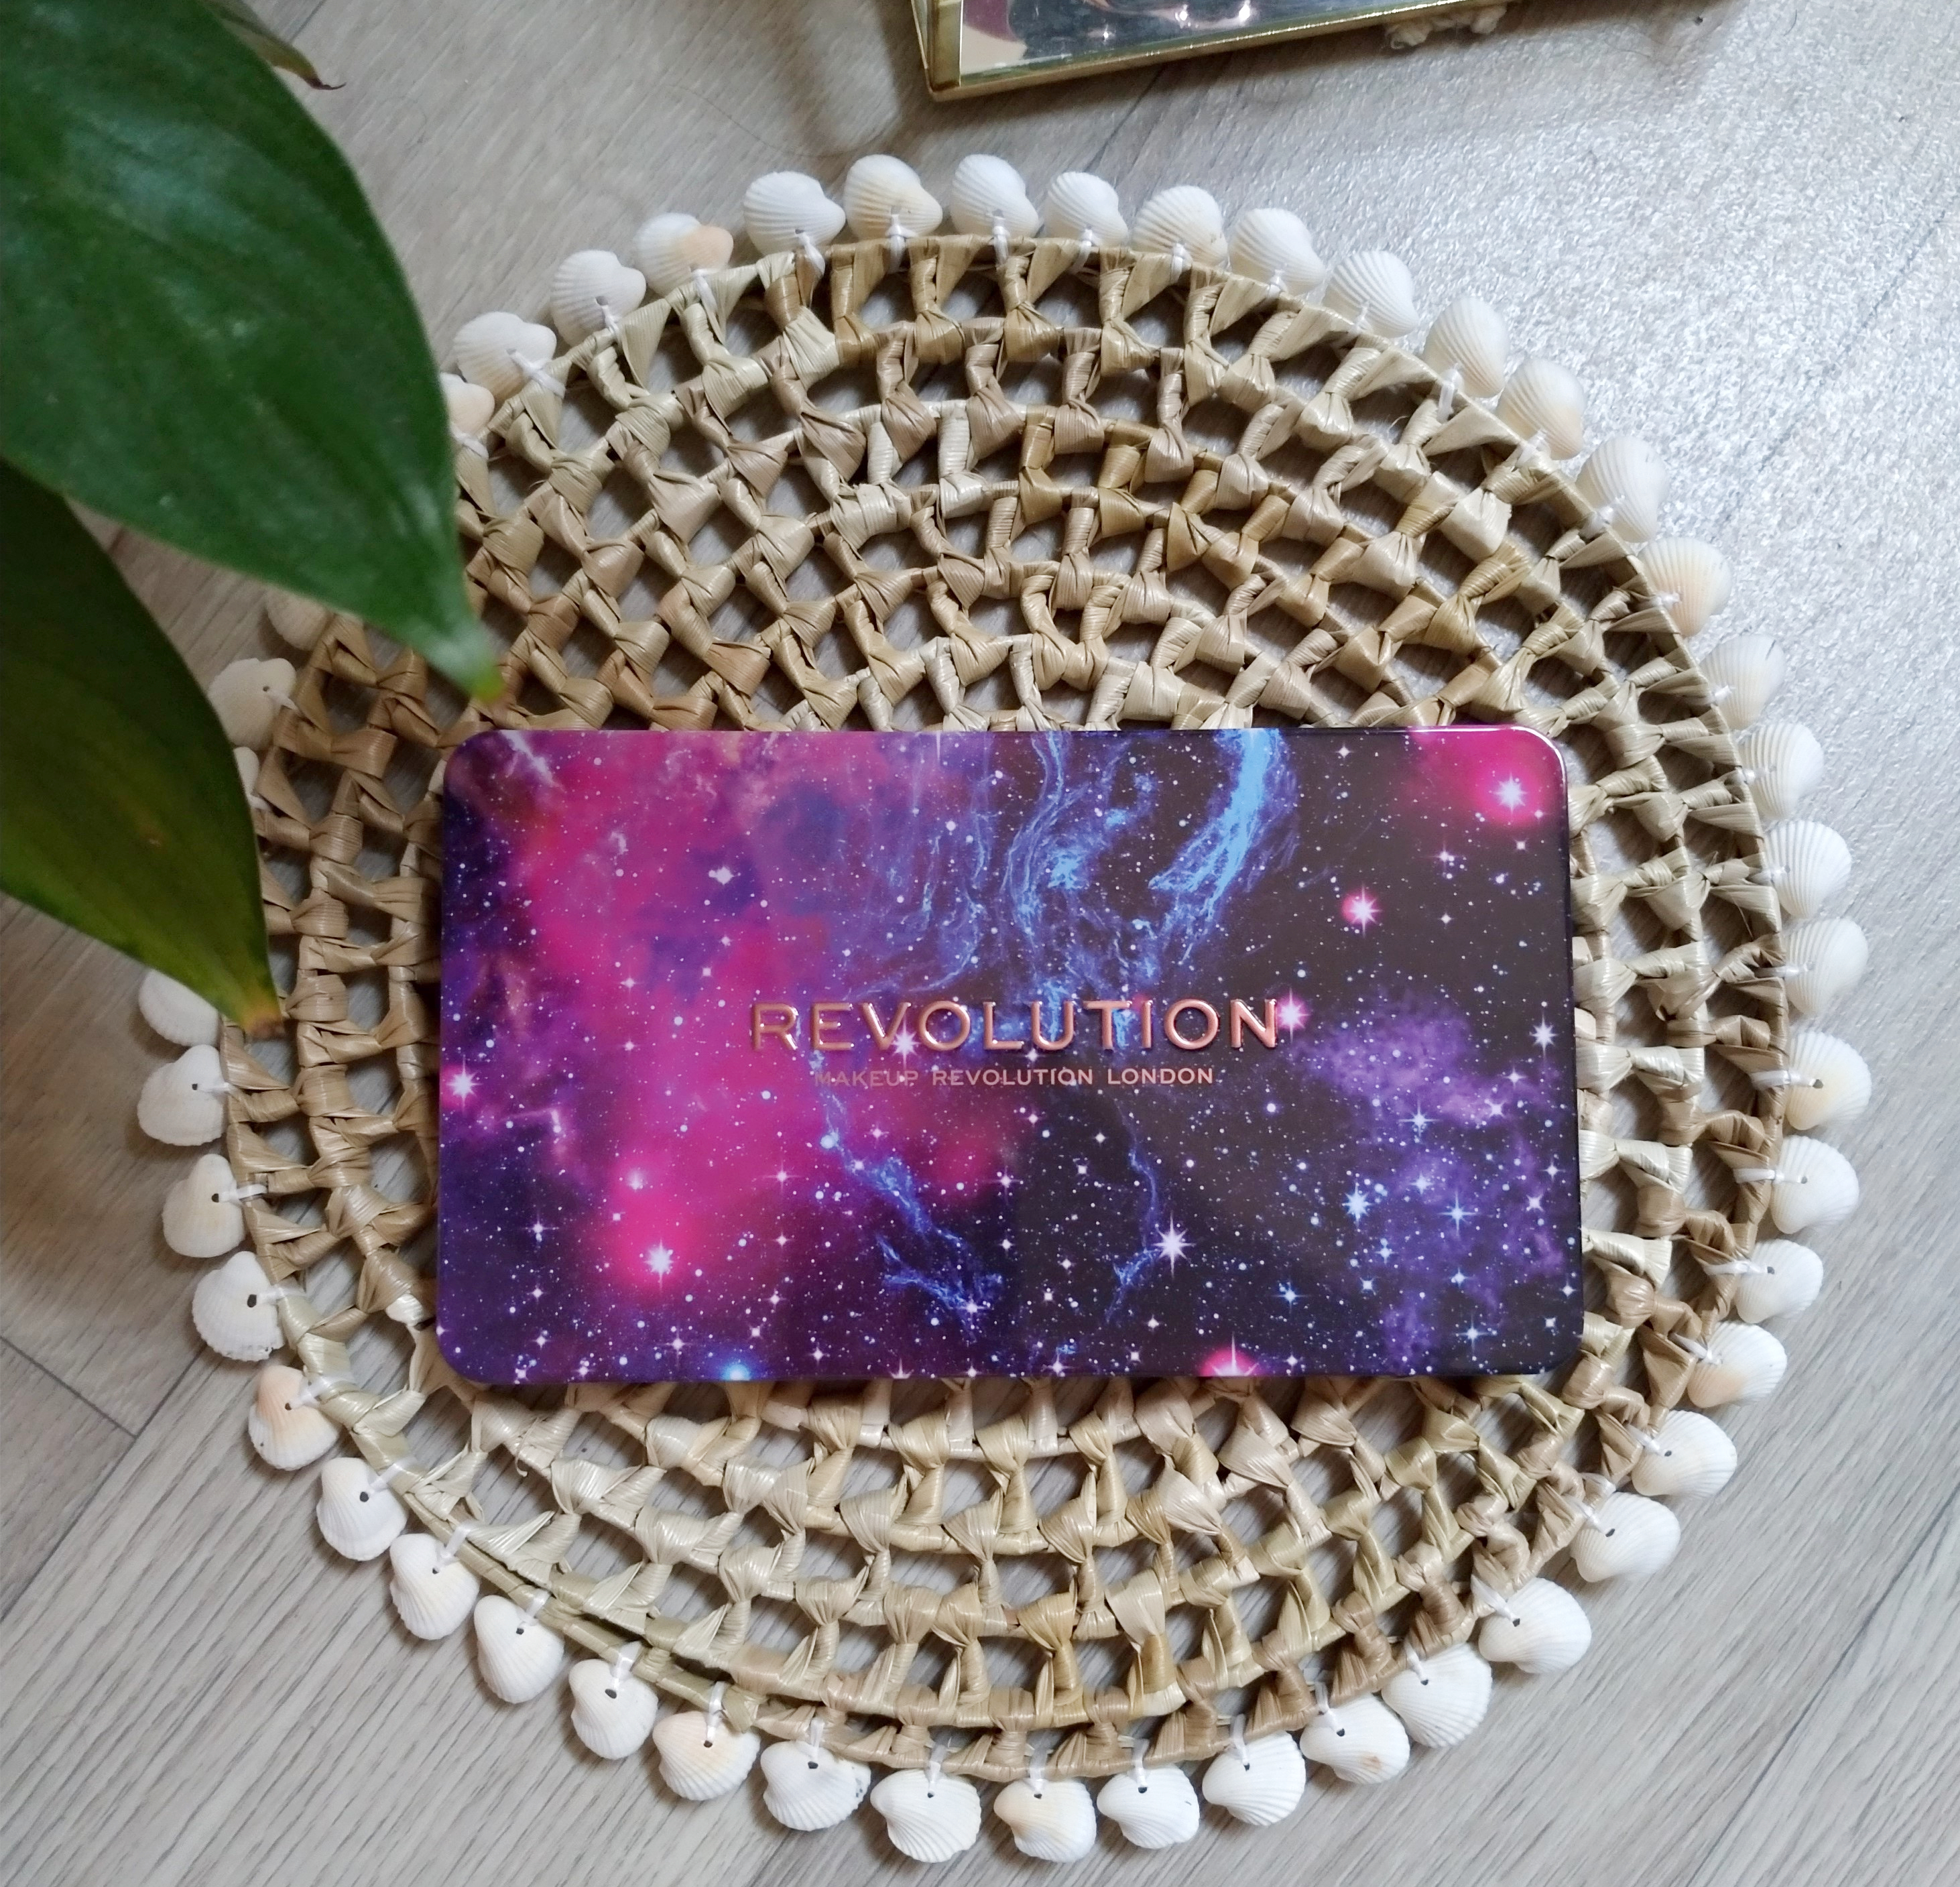 Palette Constellation Makeup revolution